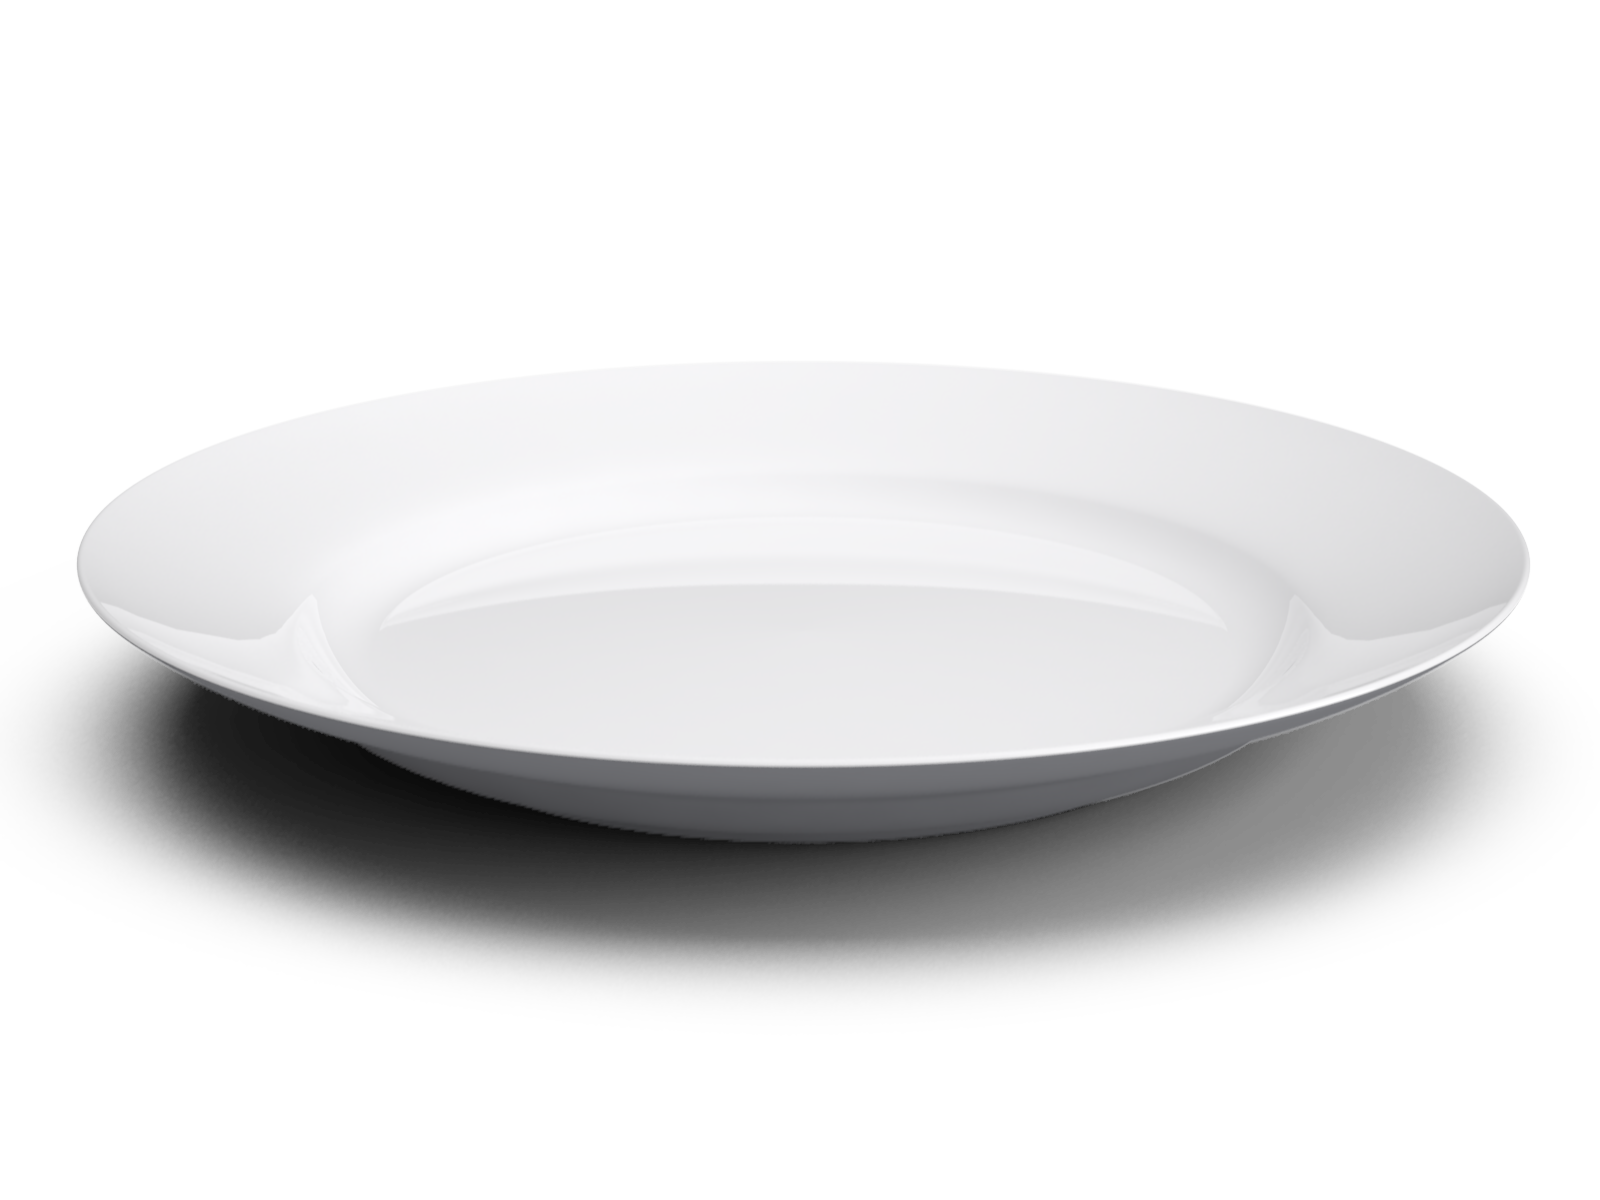 Plates Png PNG Image - Plate HD PNG